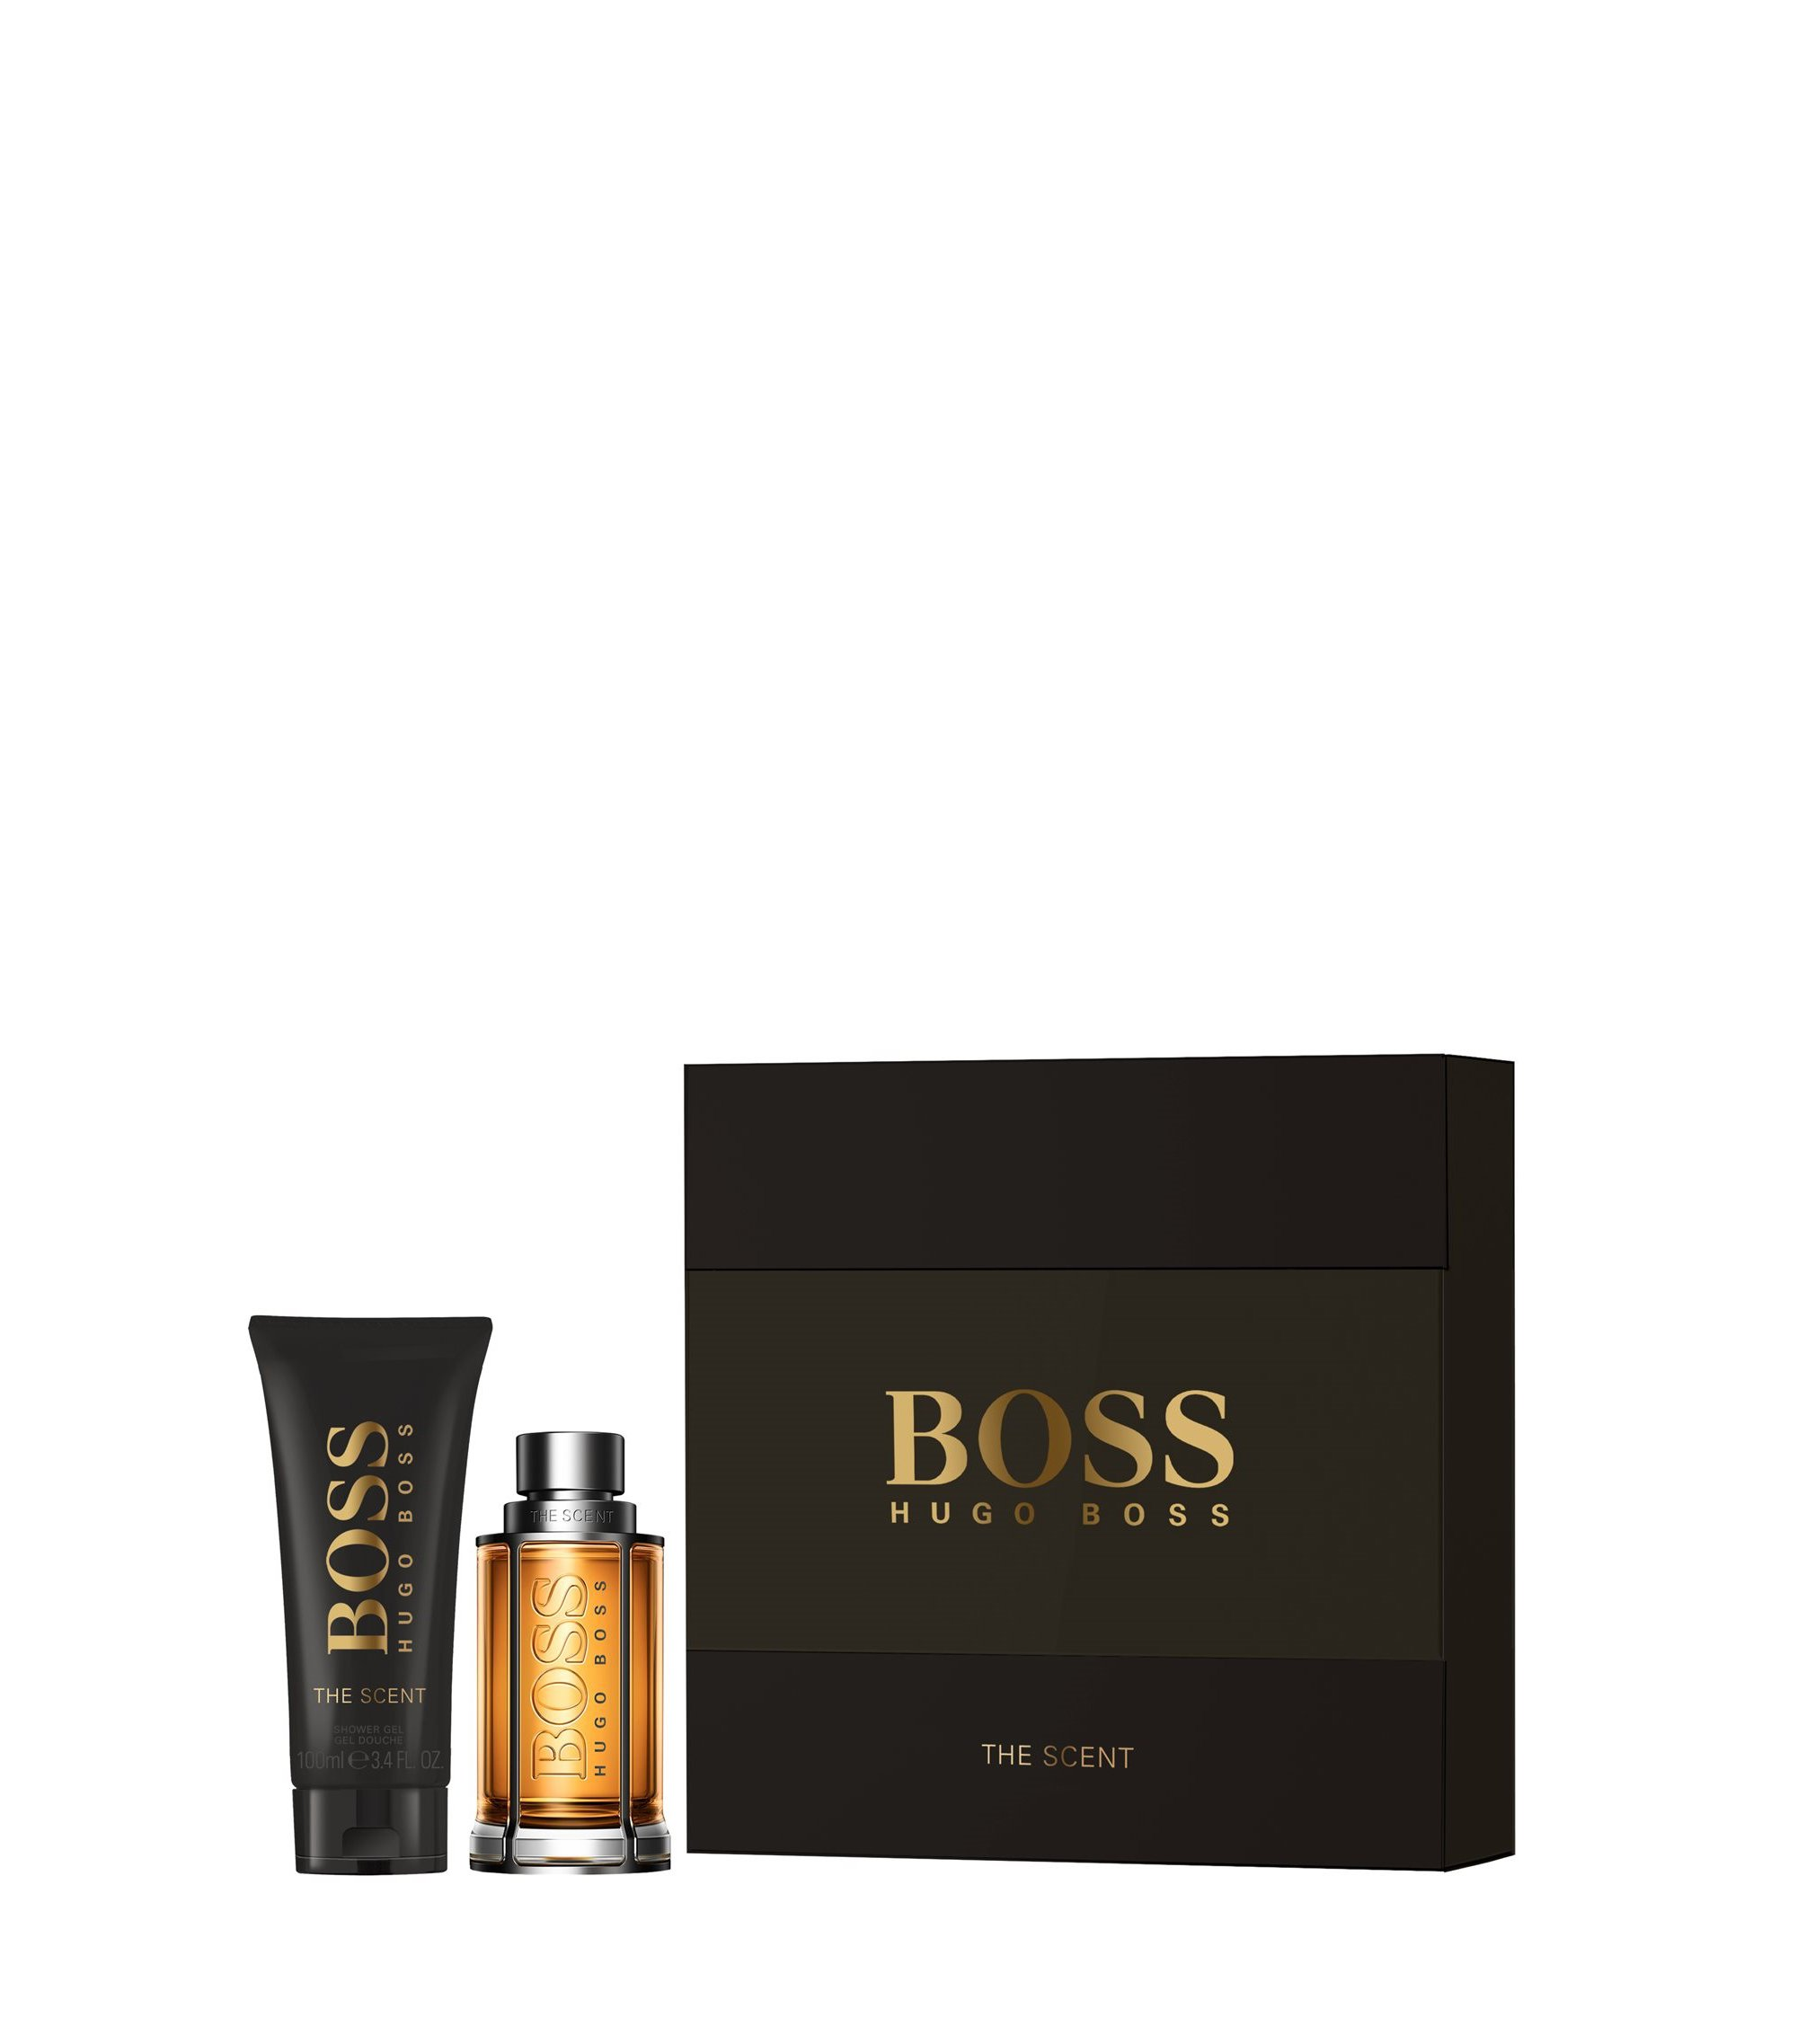 Geurcadeauset BOSS The Scent, Assorted-Pre-Pack